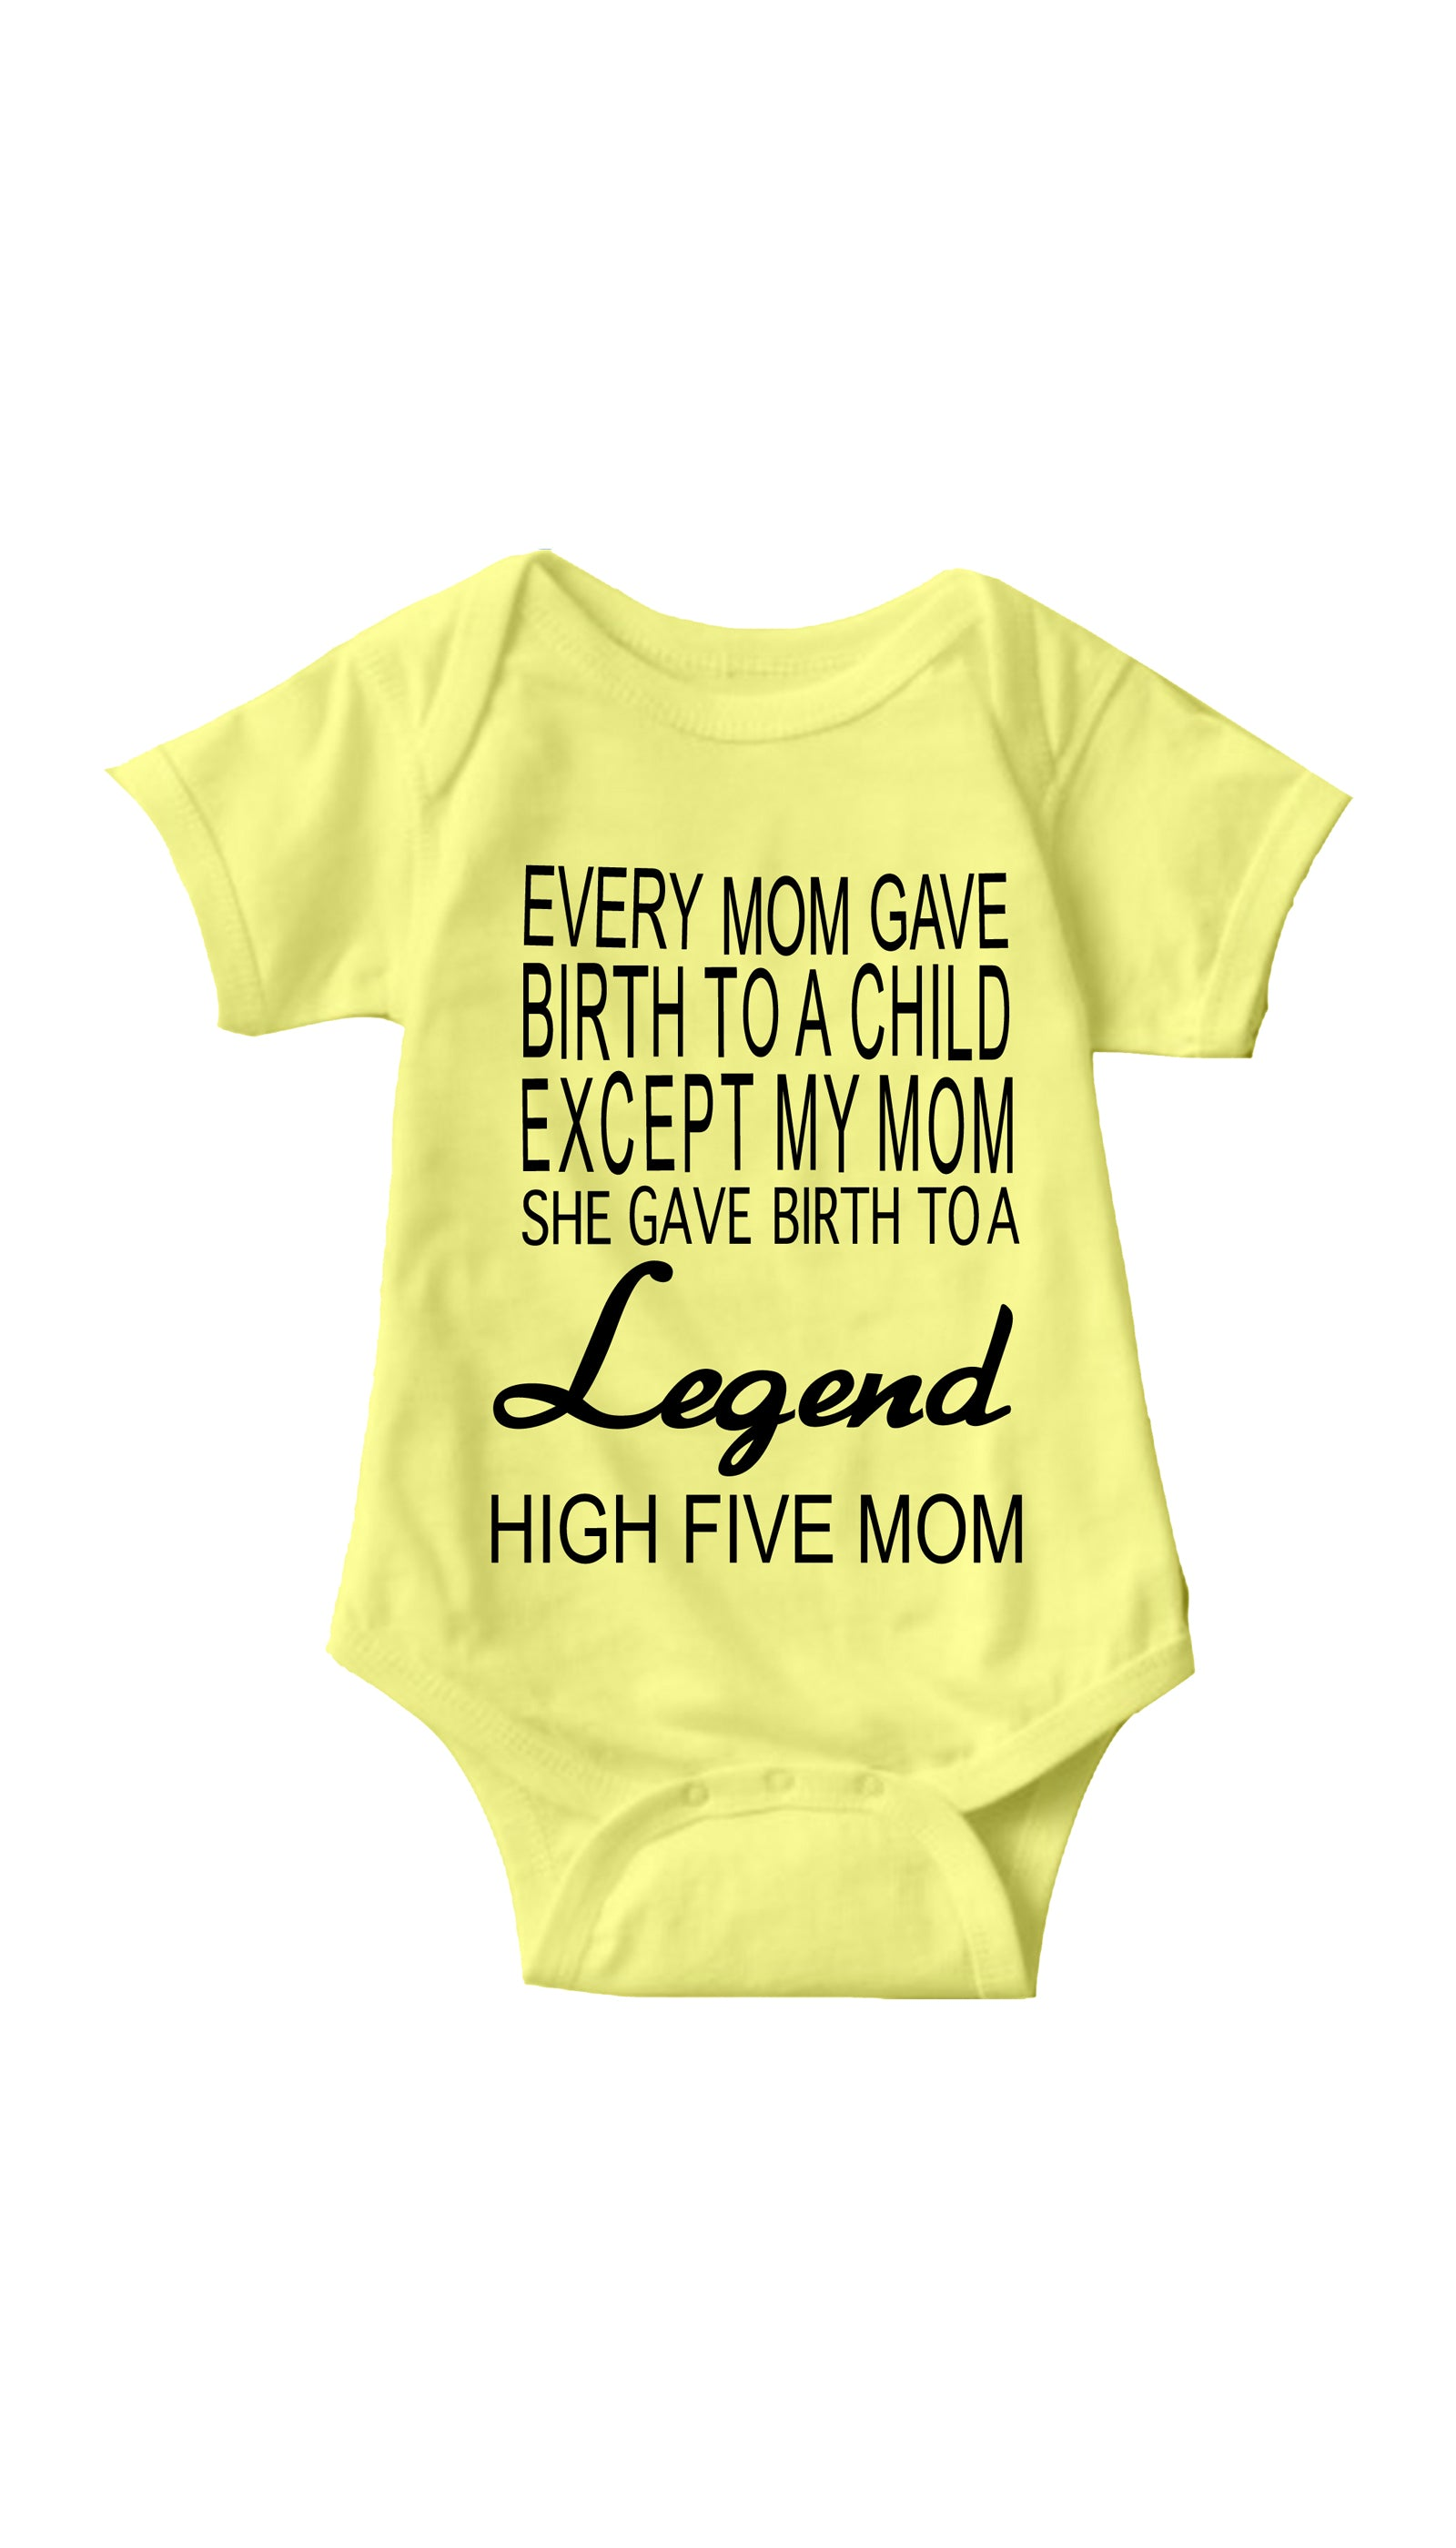 My Mom Gave Birth To A Legend Yellow Infant Onesie | Sarcastic Me